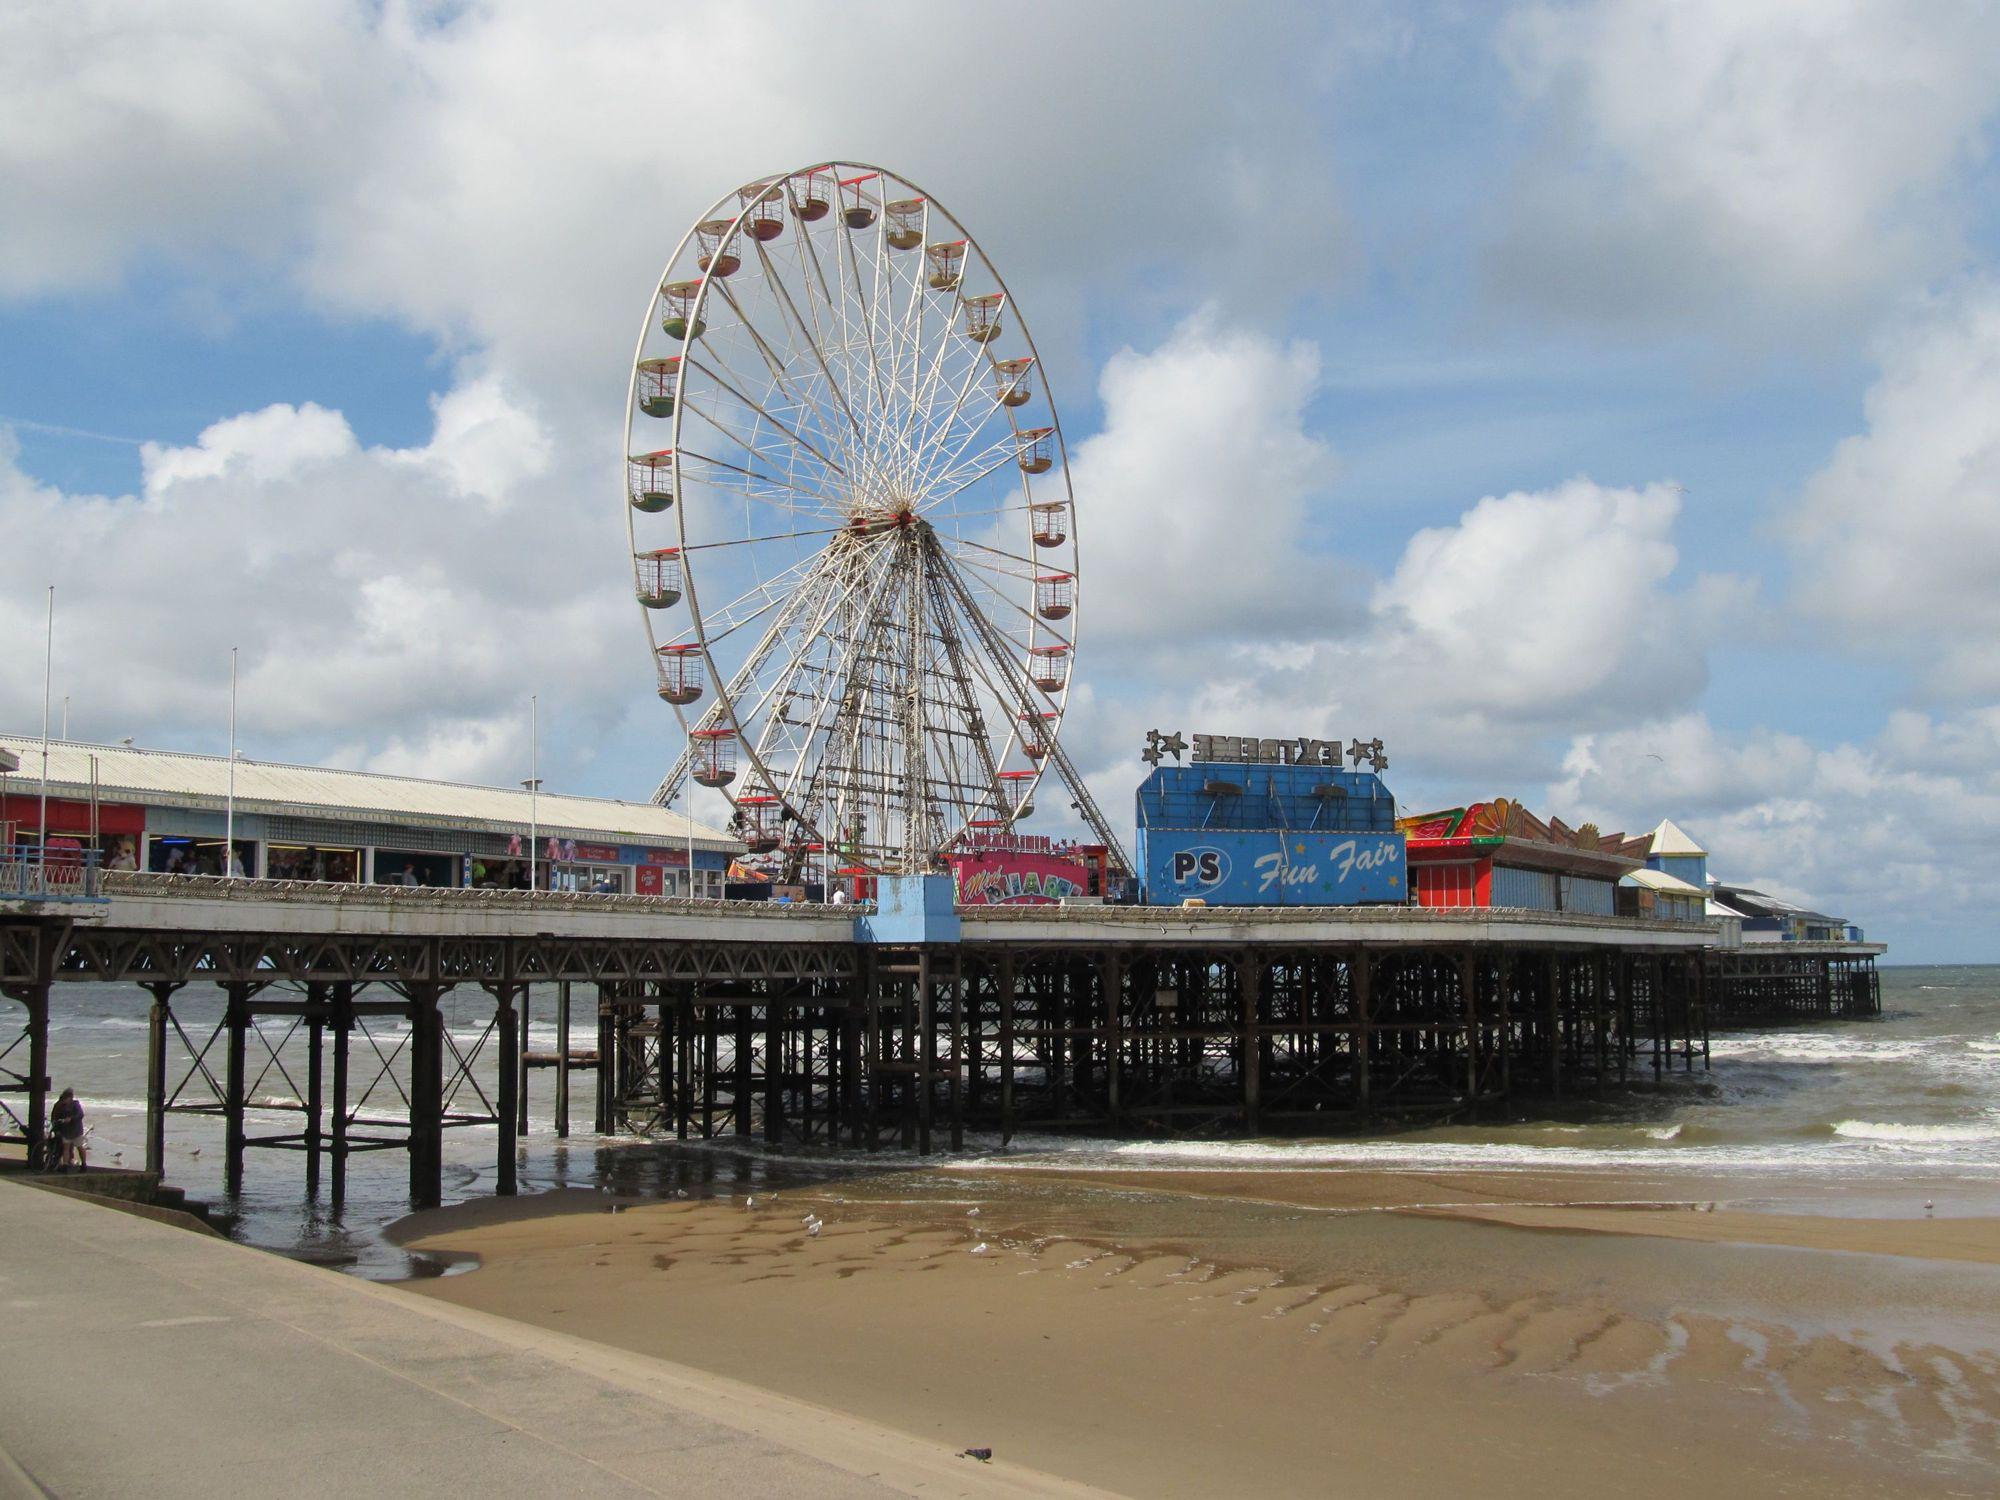 Hotels, B&Bs & Self-Catering in Blackpool - Cool Places to Stay in the UK